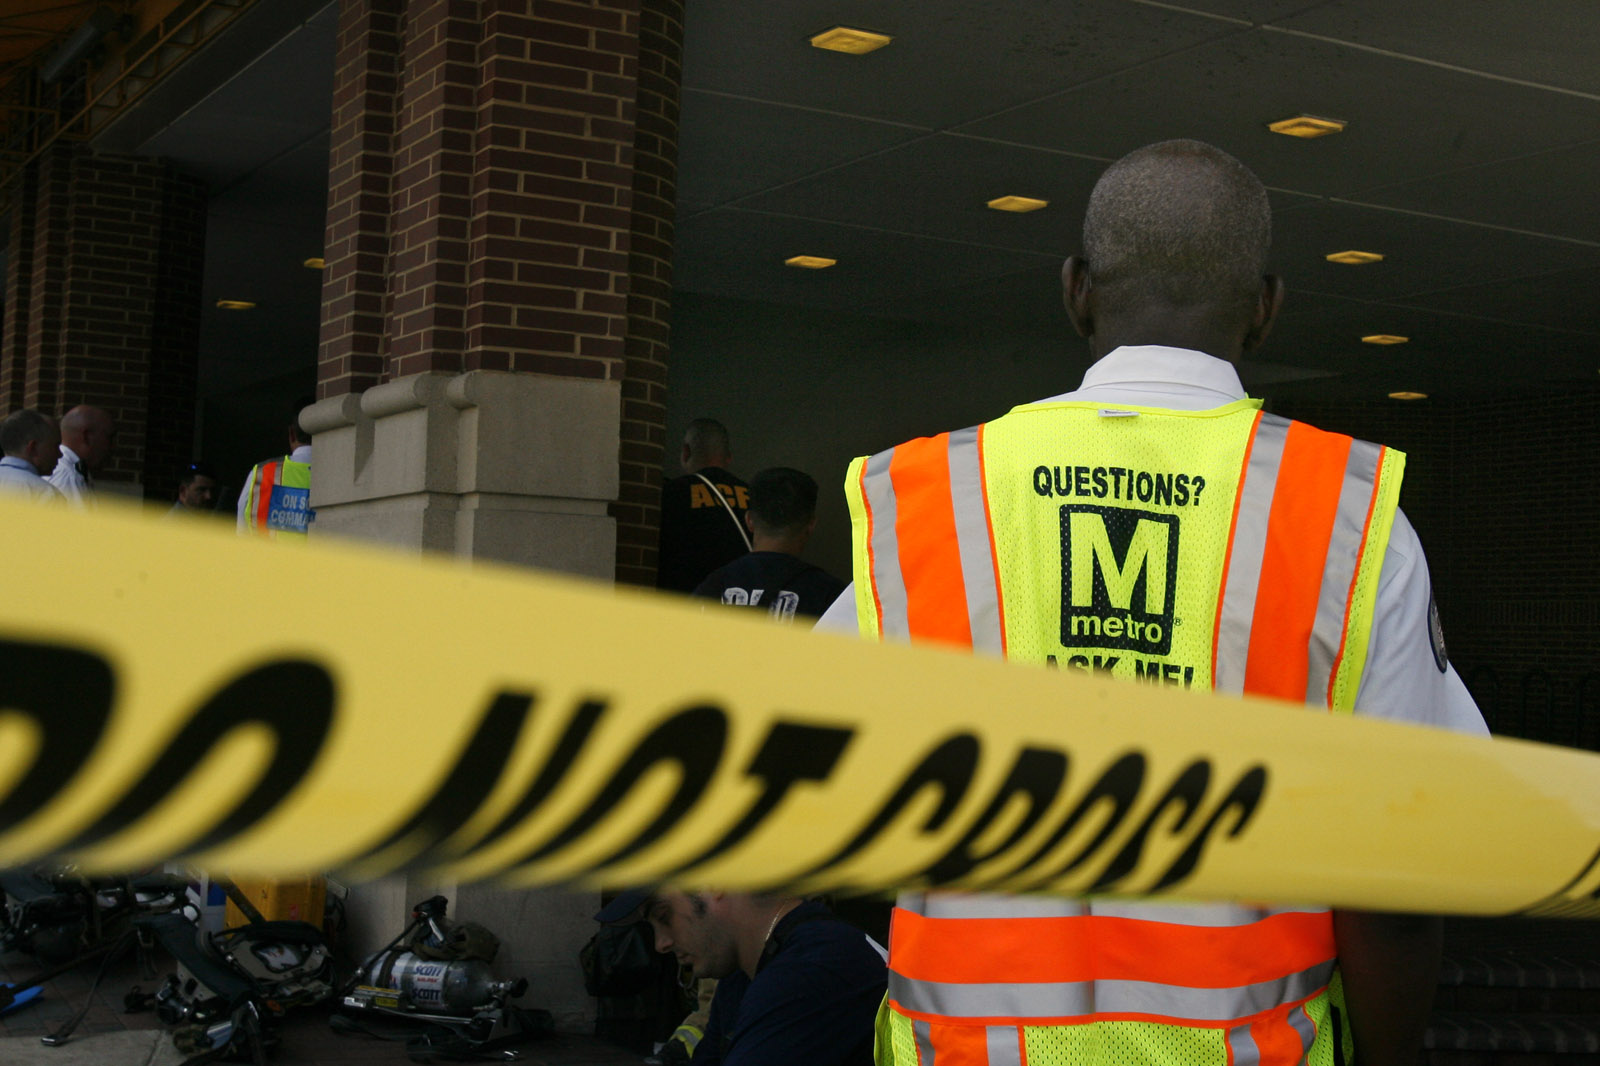 Metro trying to reduce worker fatigue as part of safety changes